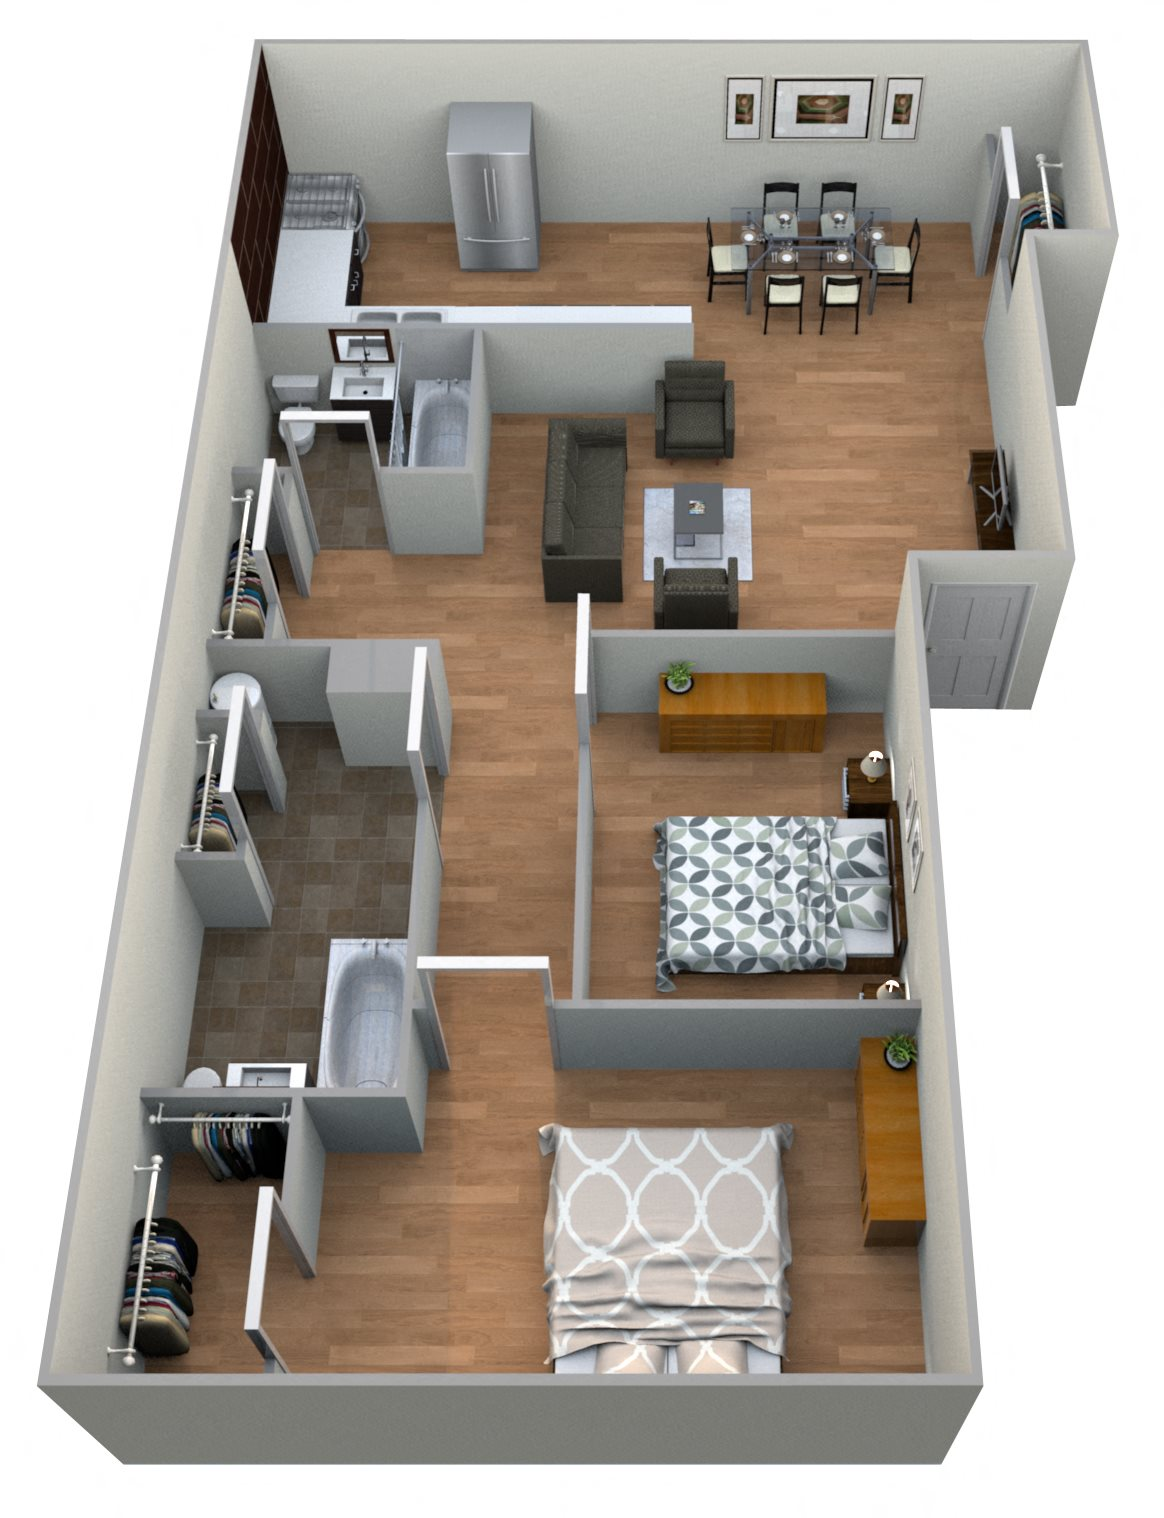 #8 Horseshoes 2 Bedroom w/ 2 Baths Floor Plan 15